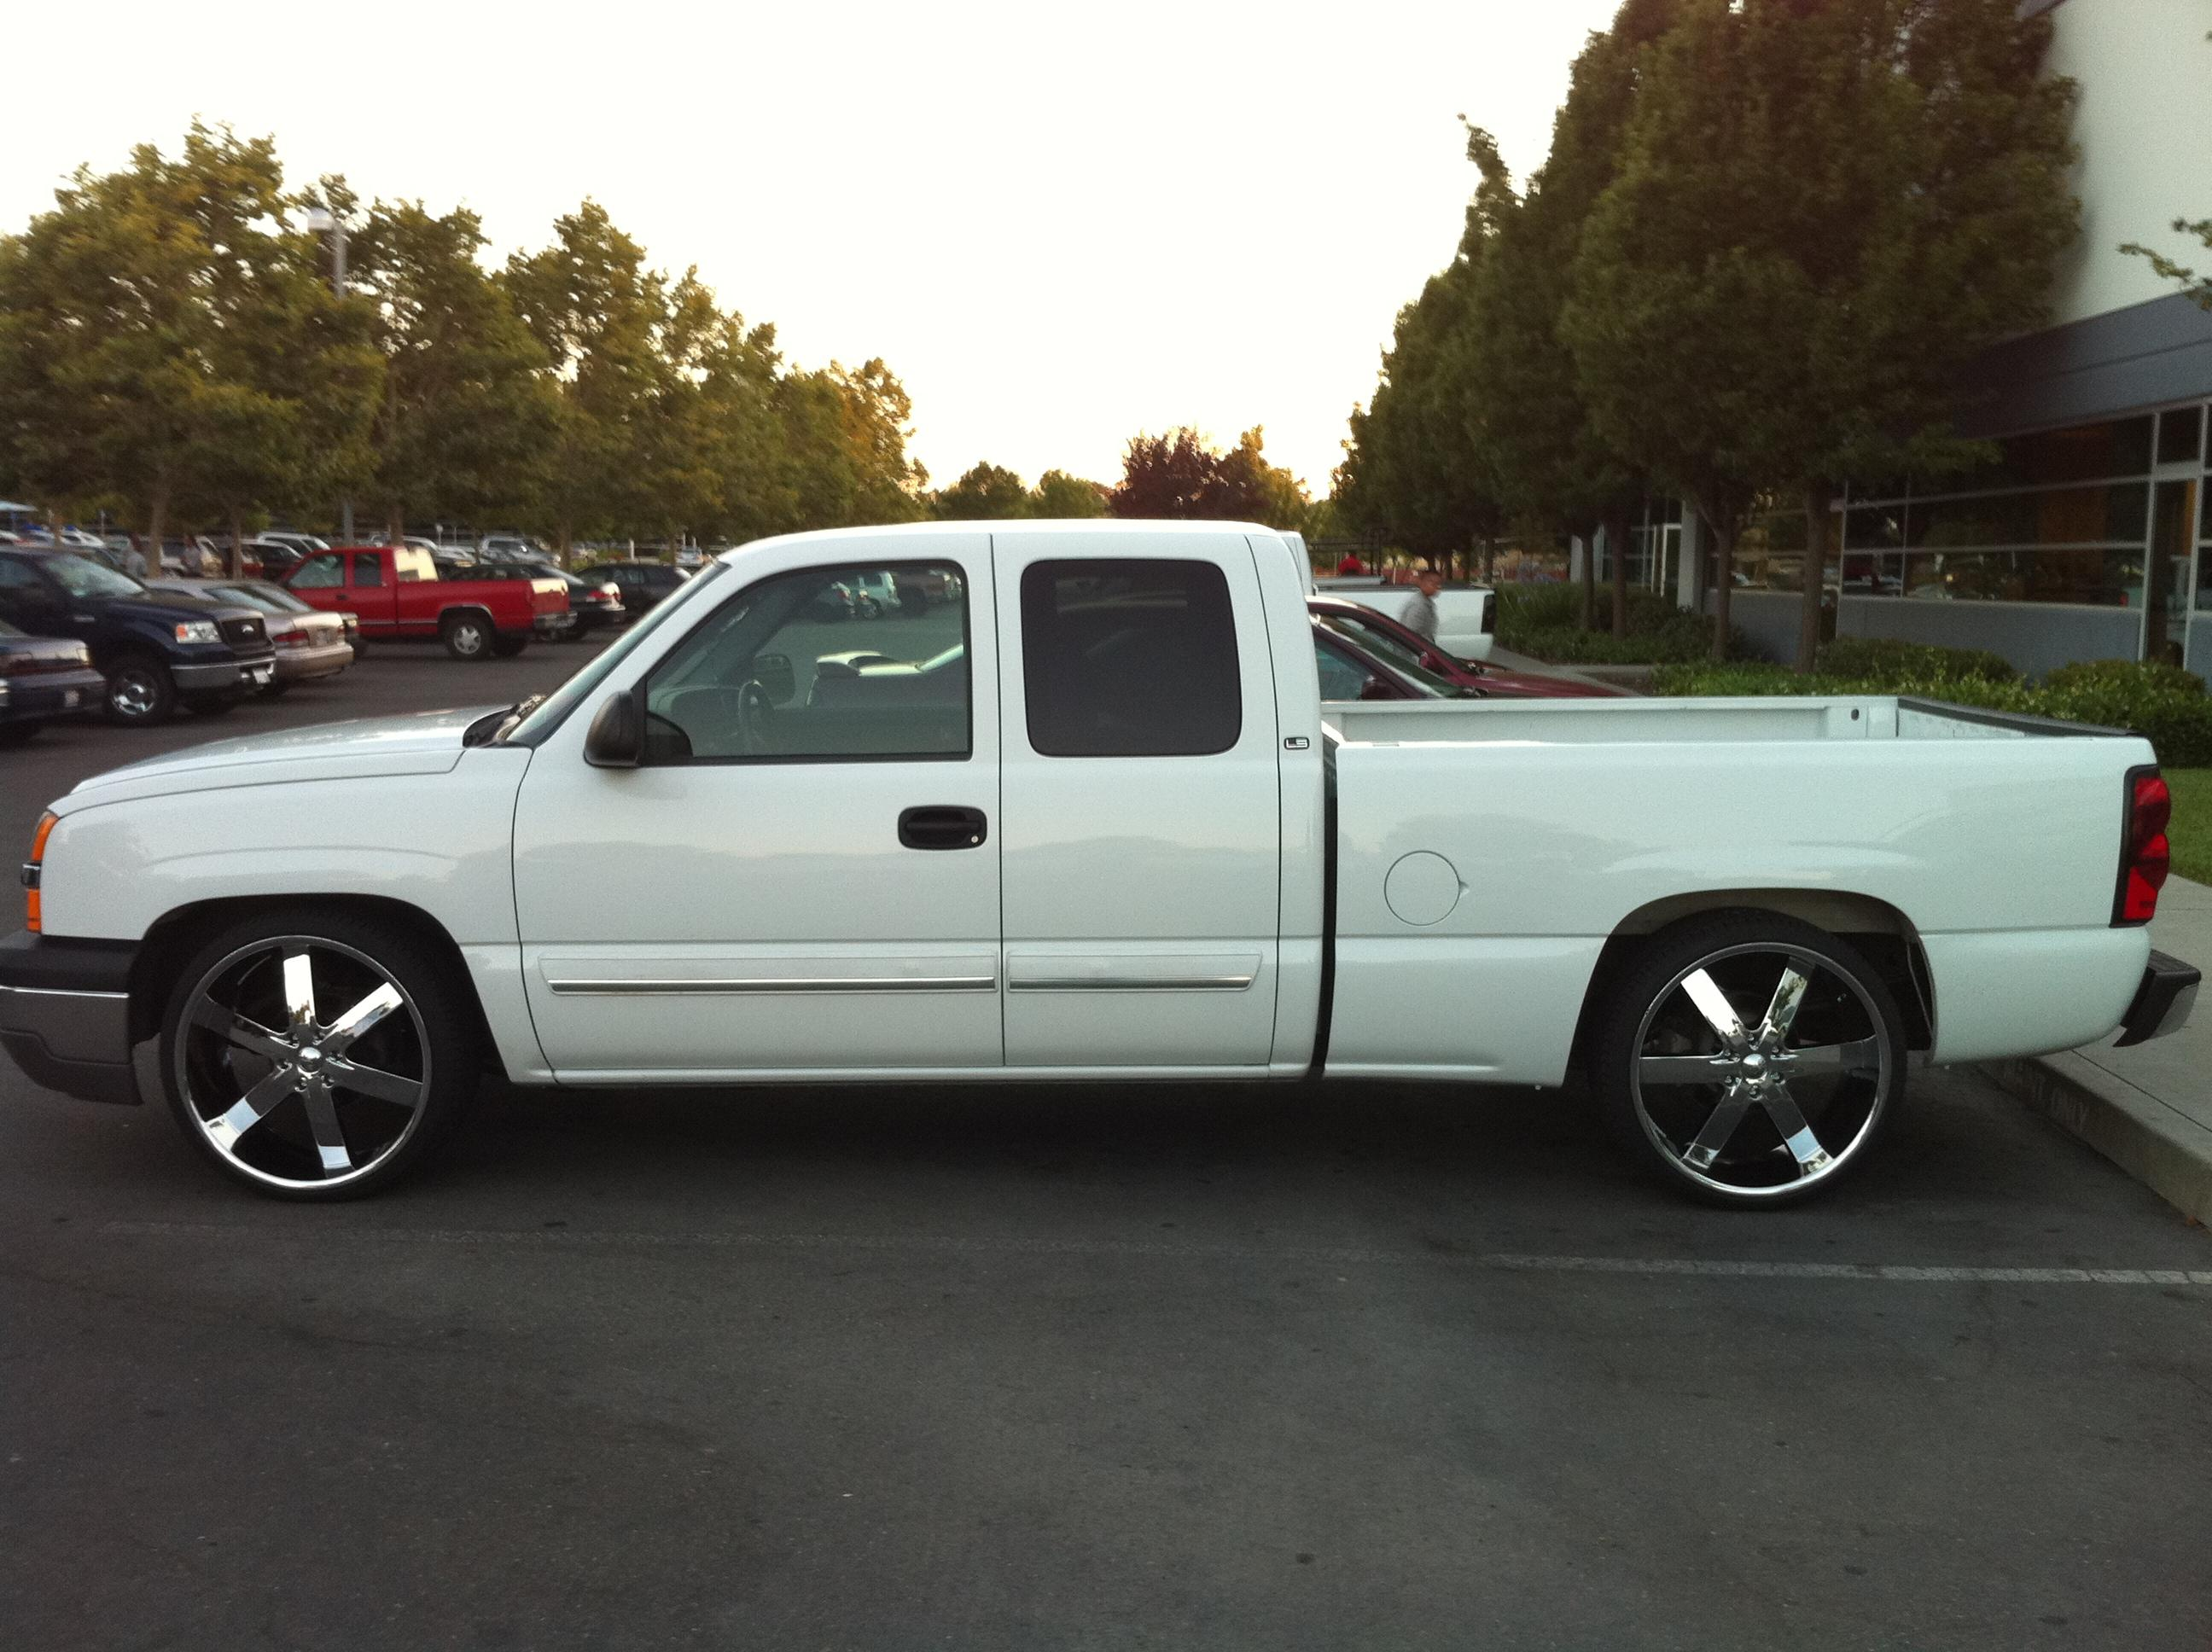 matarelli 2004 chevrolet silverado 1500 extended cab specs. Black Bedroom Furniture Sets. Home Design Ideas